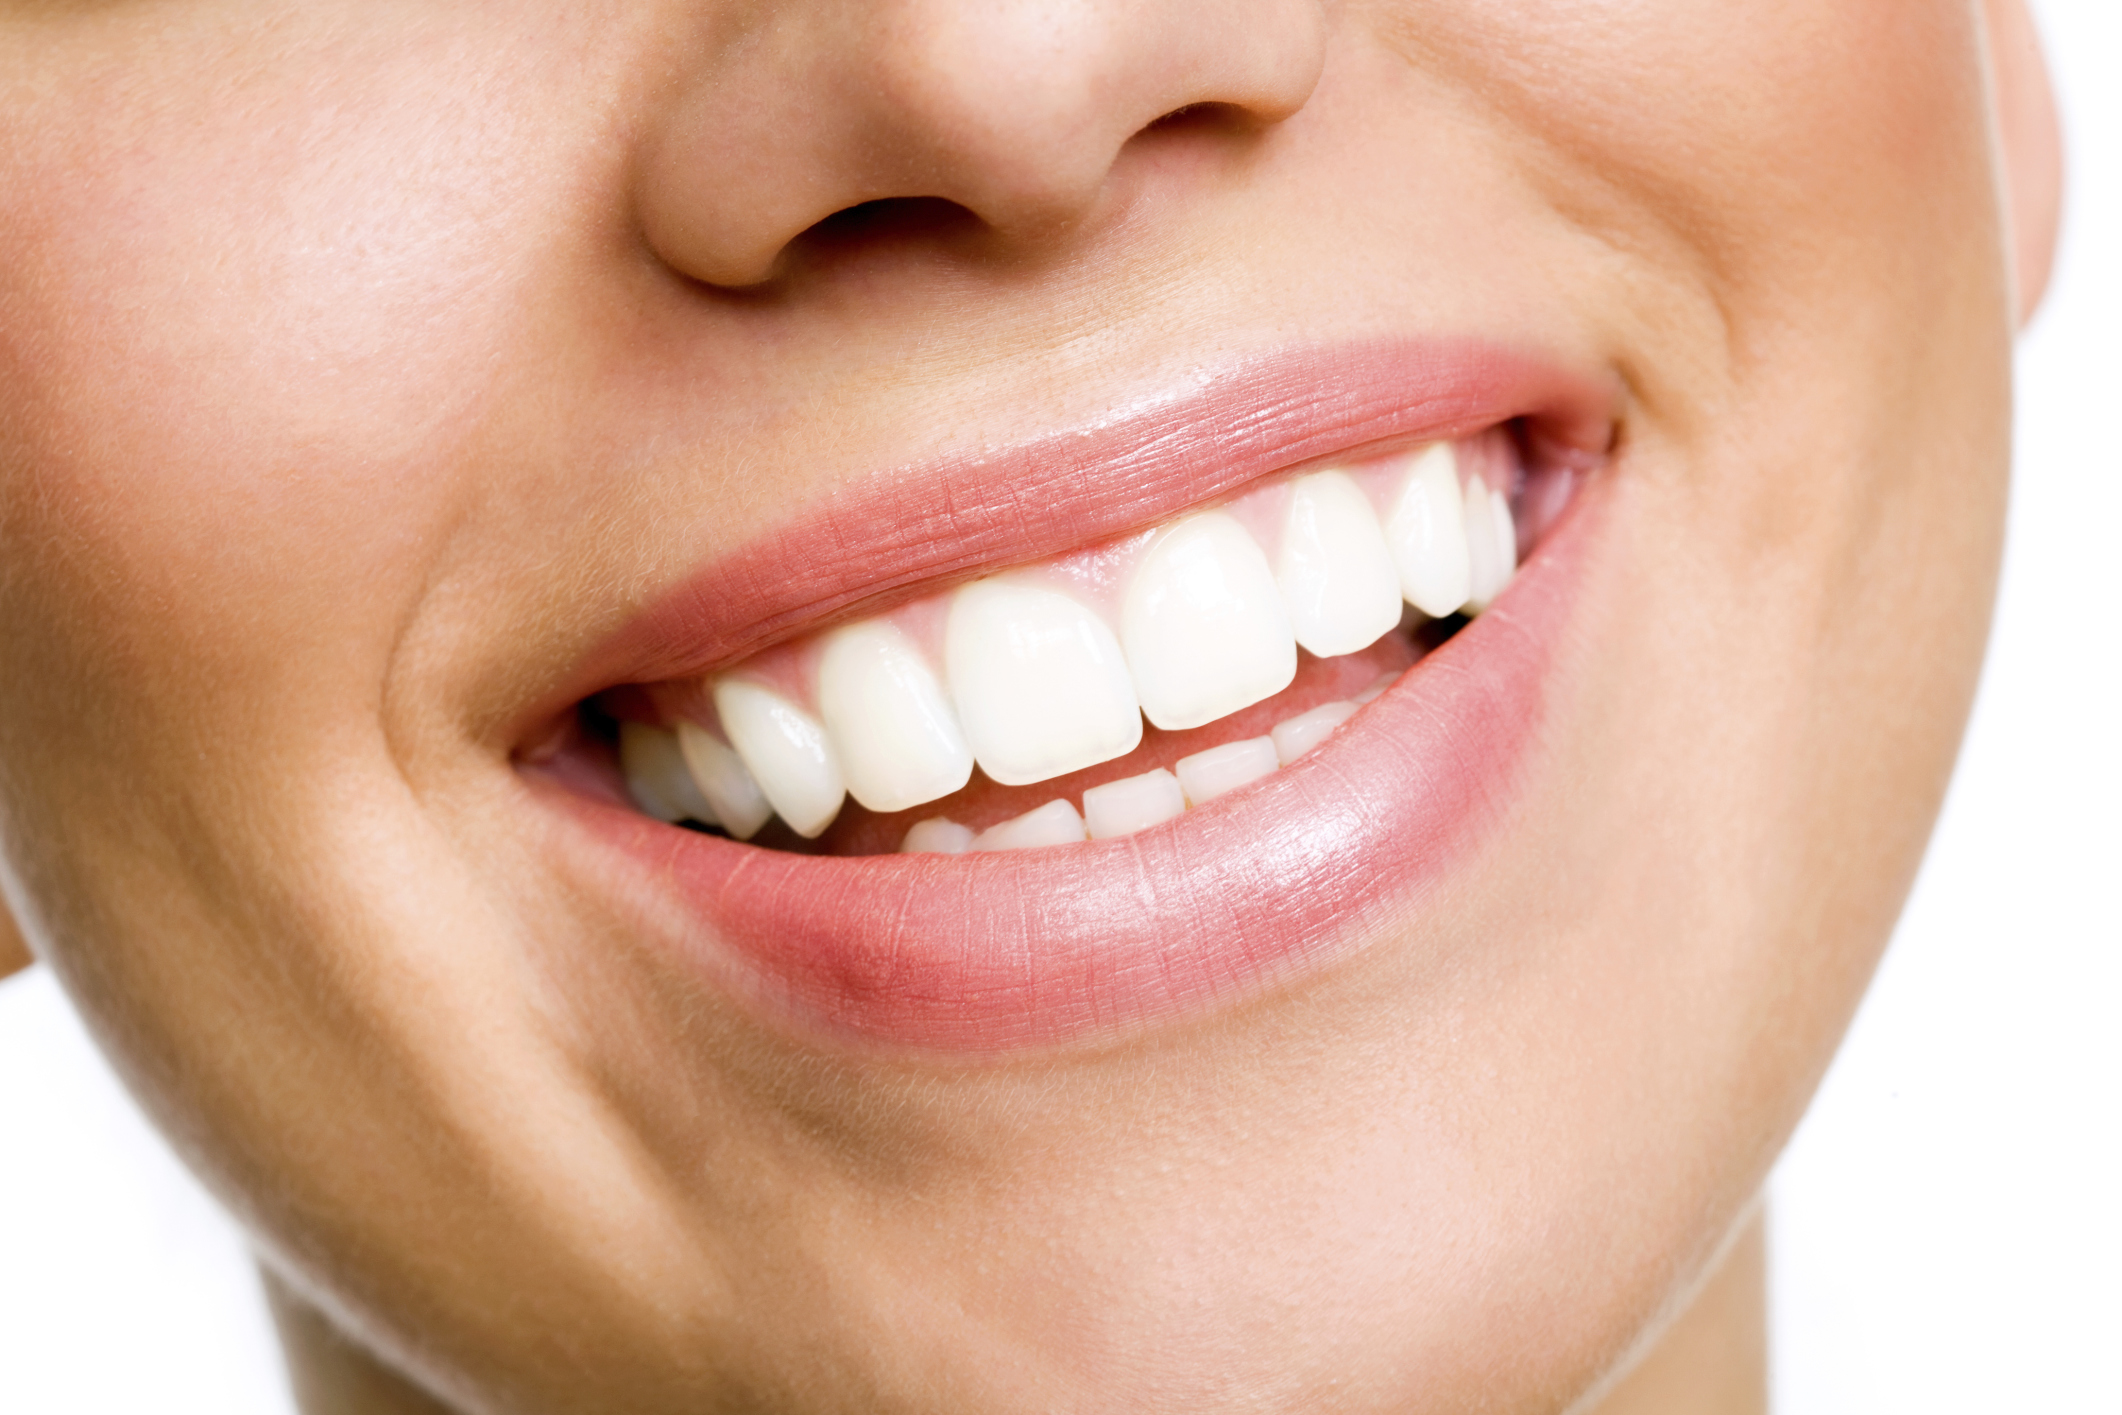 houston veneers cost and information